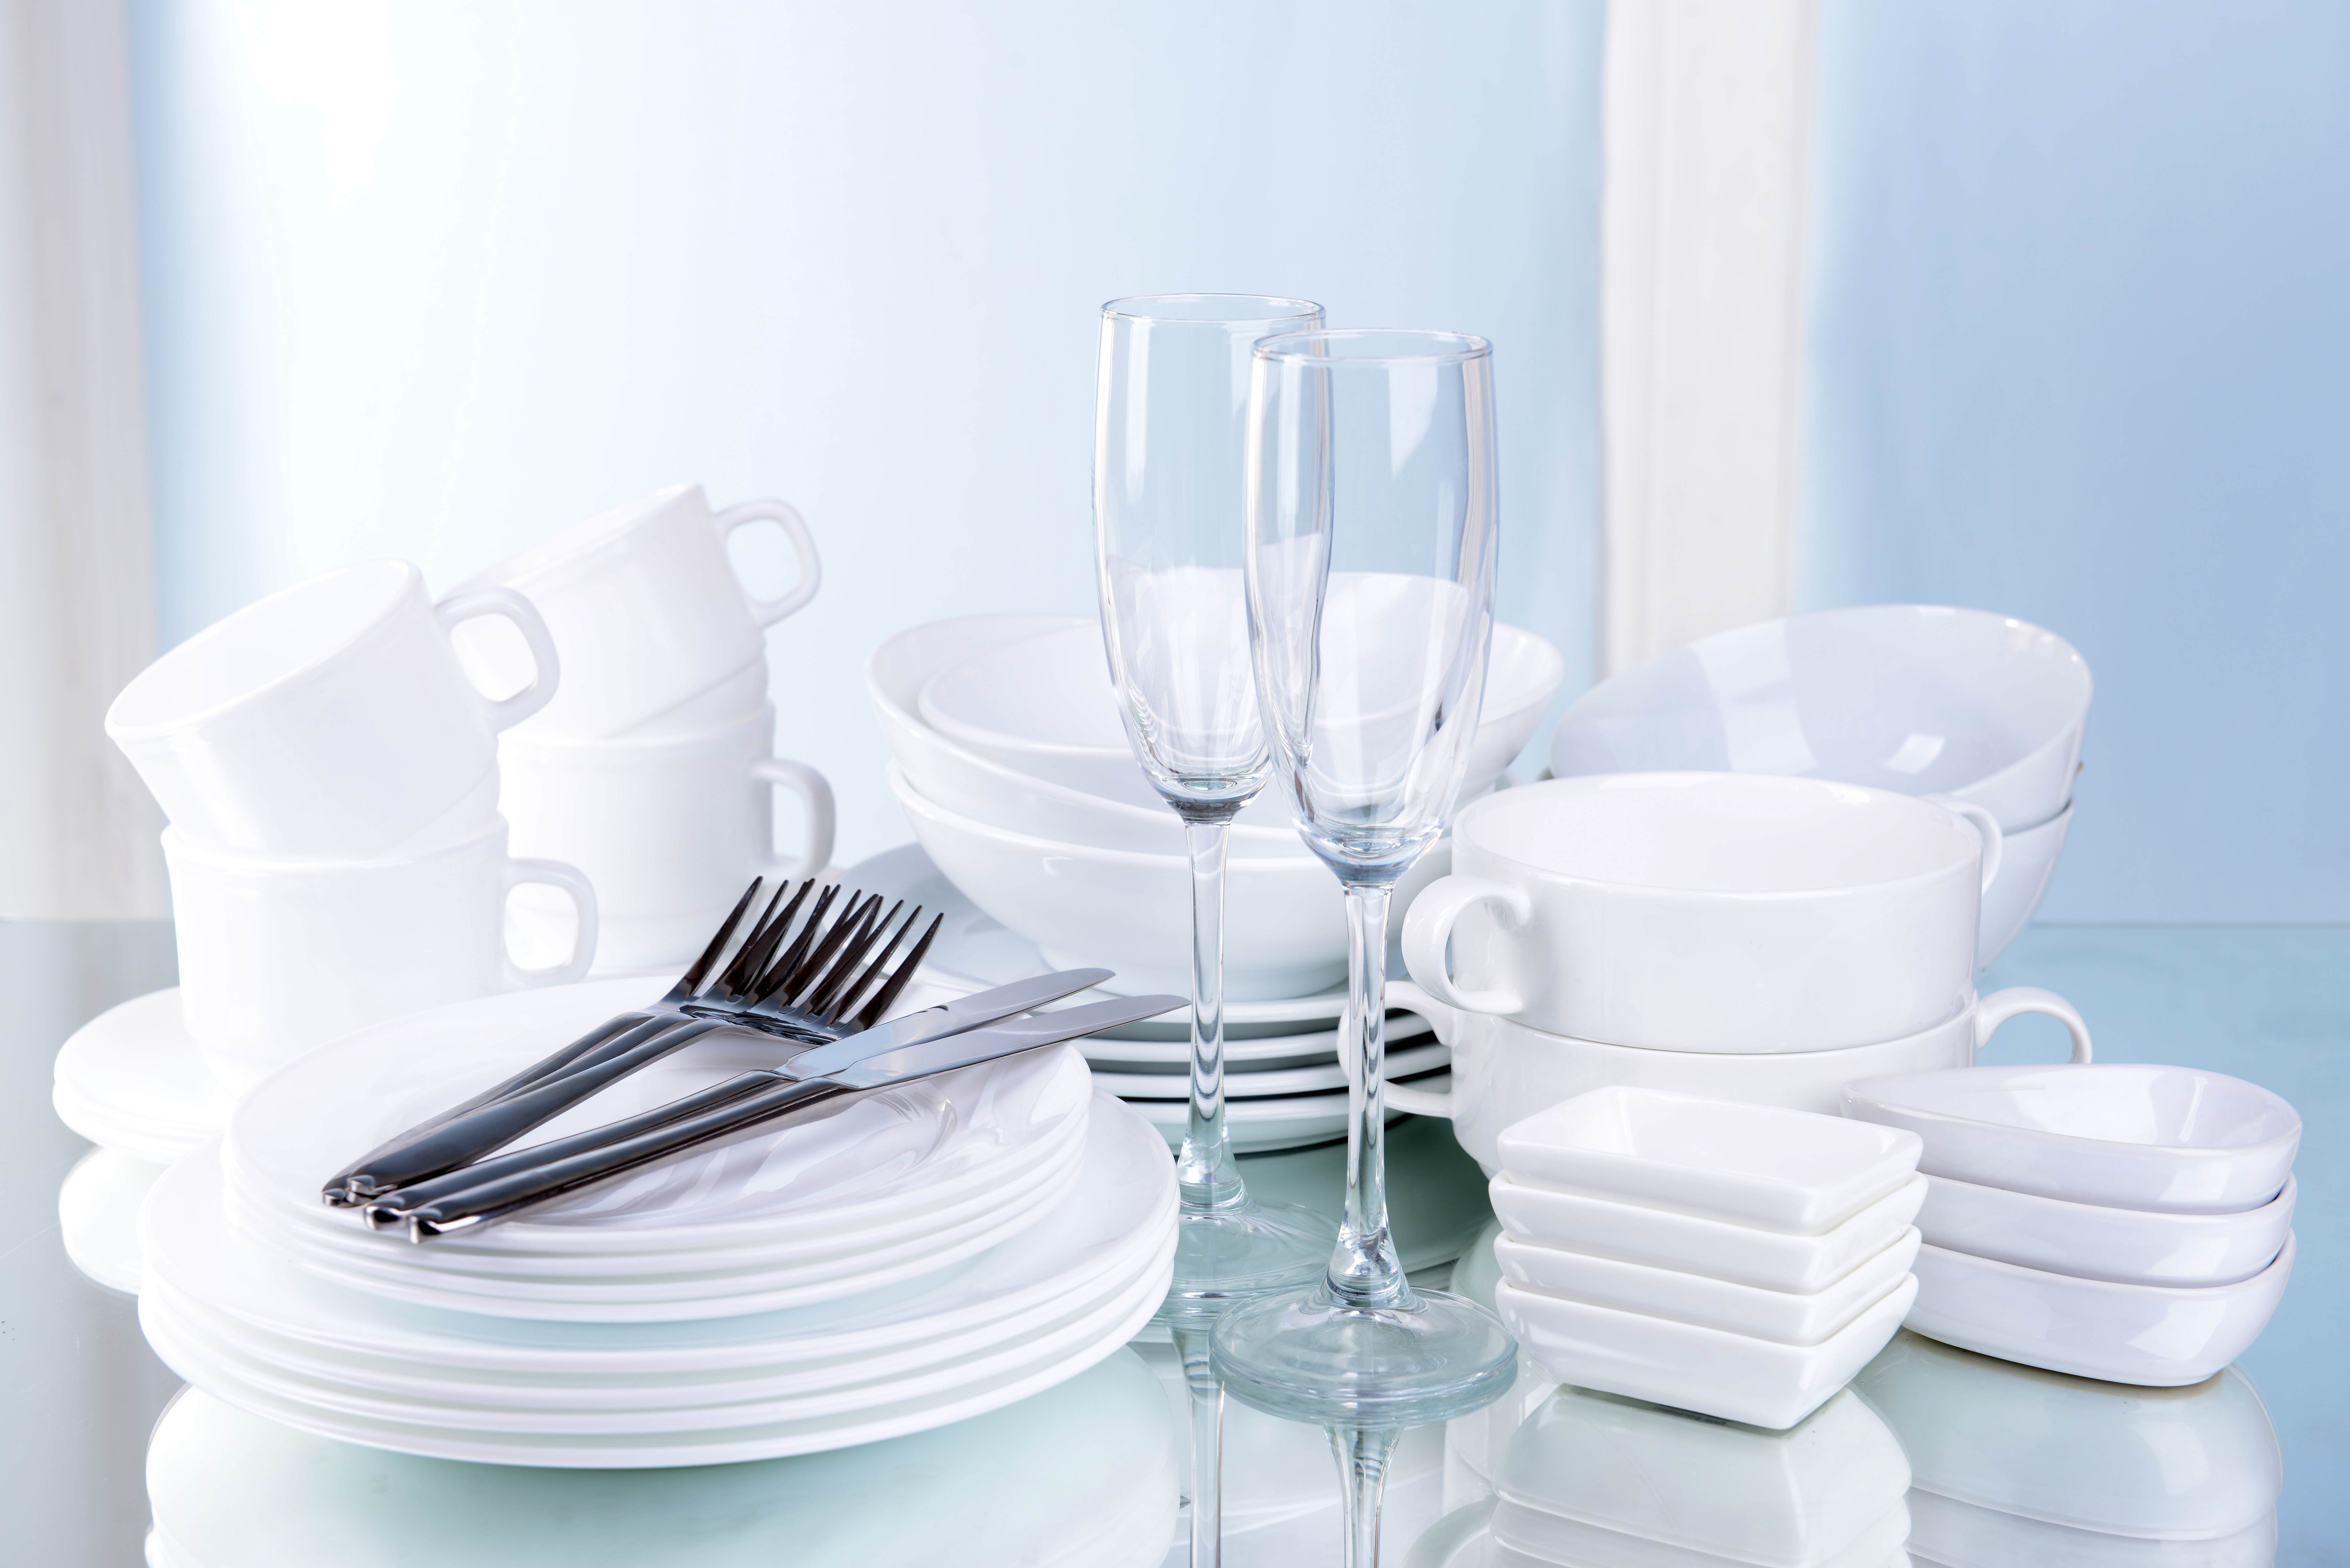 Sparkling clean cutlery, crockery and glasses